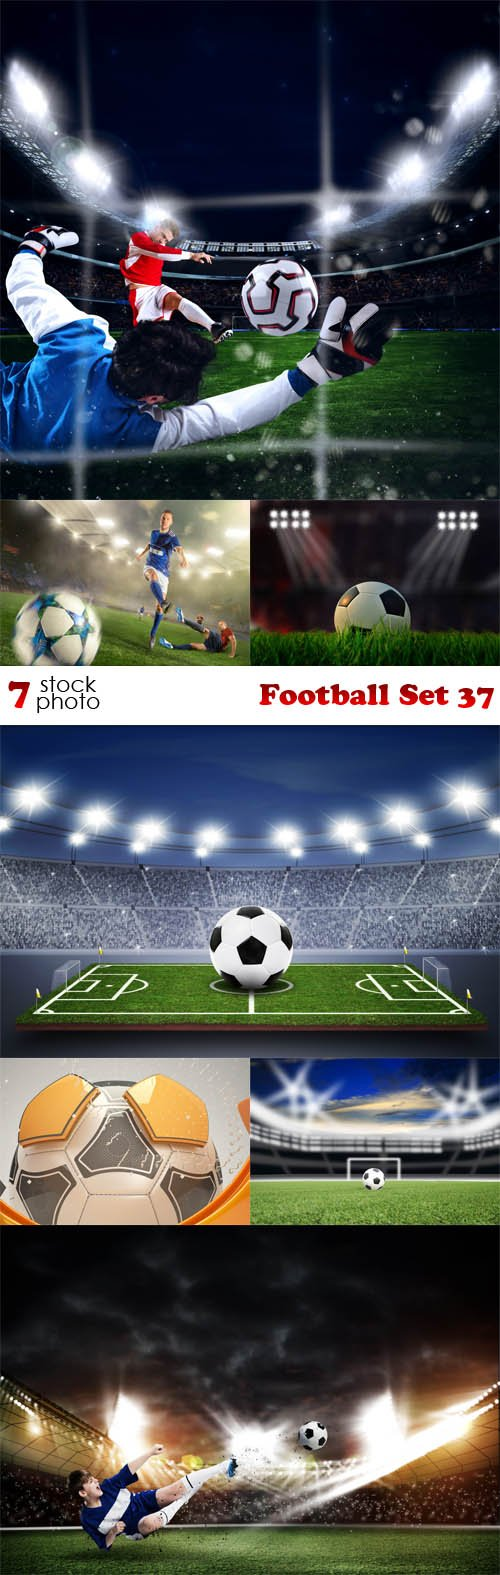 Photos - Football Set 37